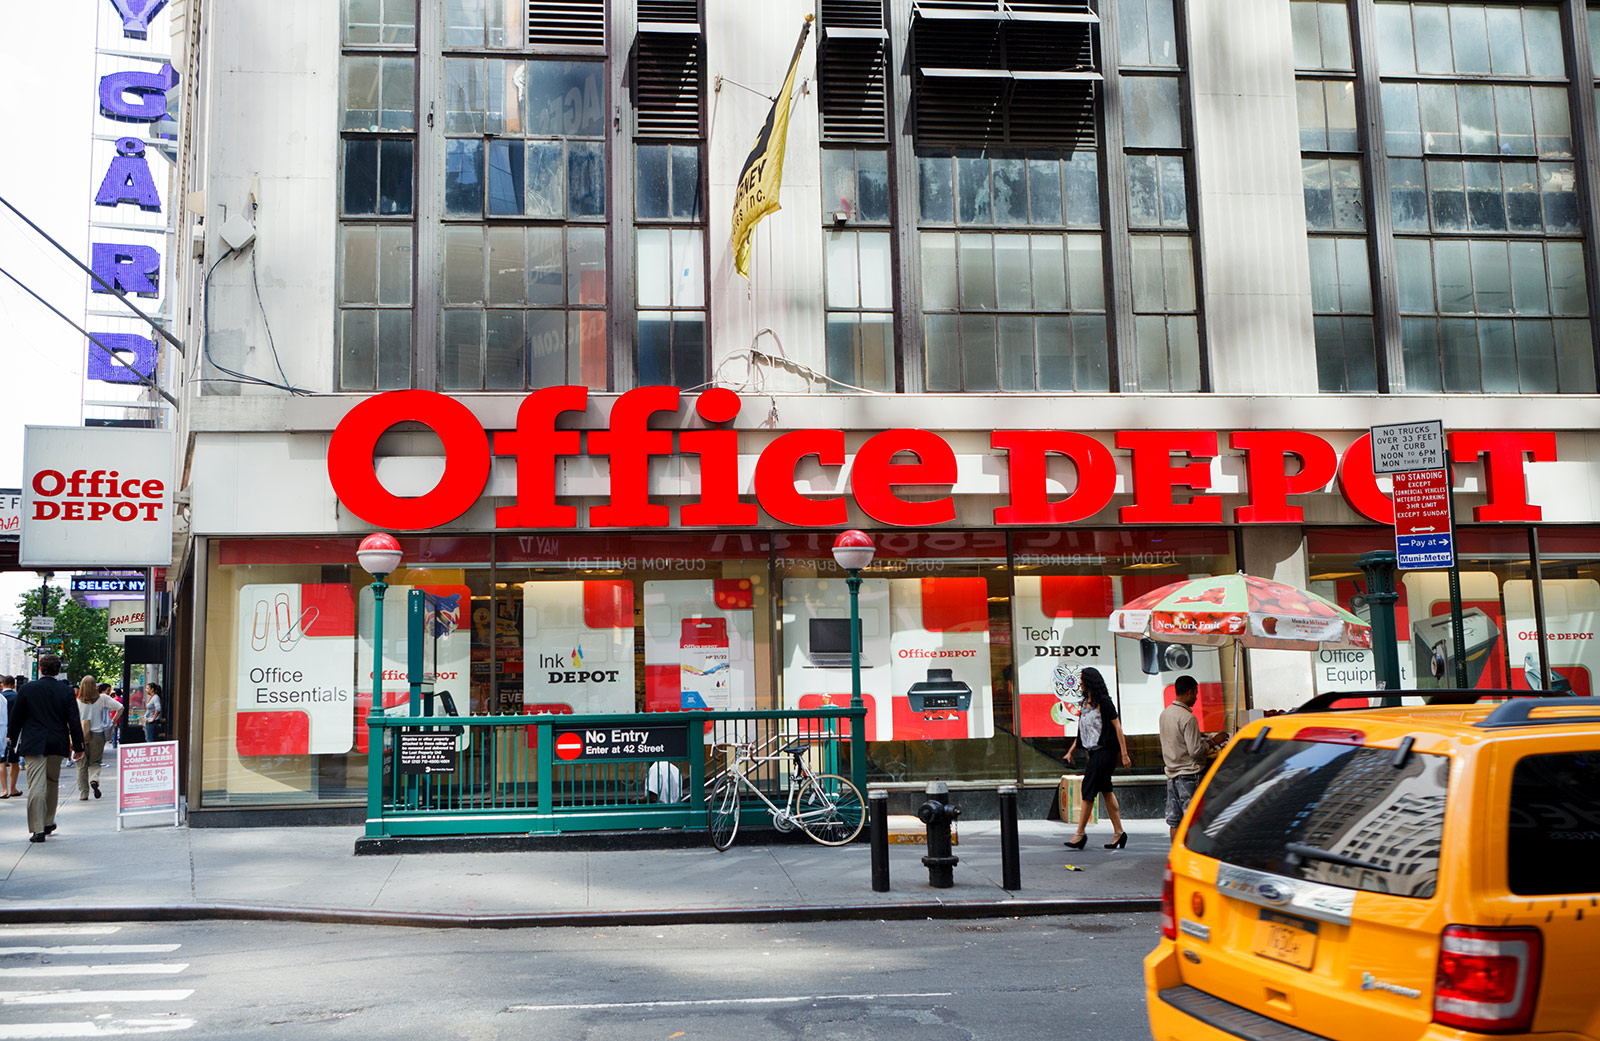 Office Depot in Midtown Manhattan, NYC.